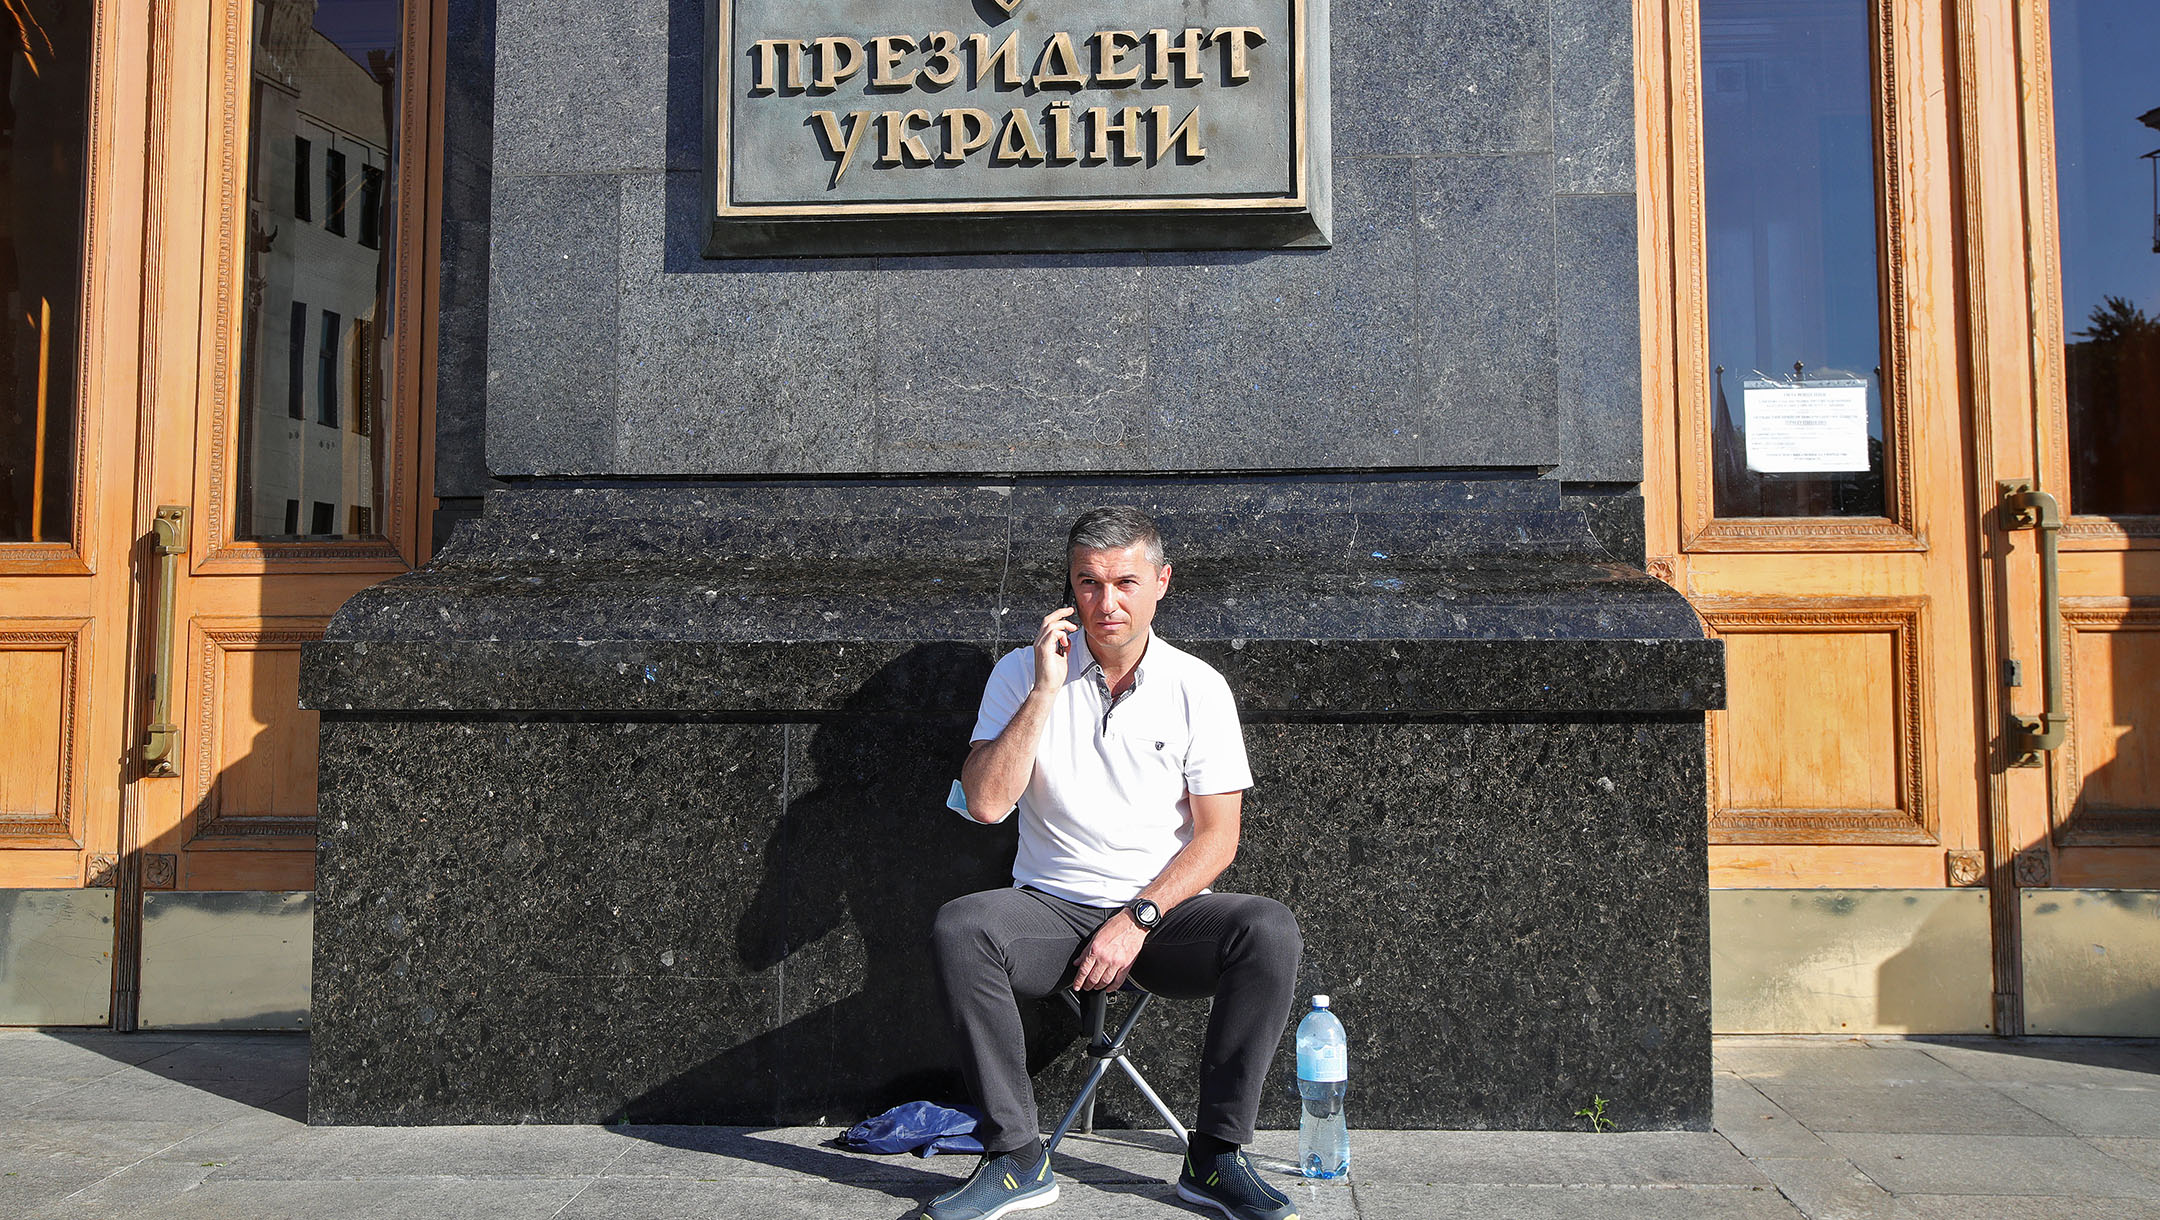 Oleksandr Tsebriy, the mayor of Uman, speaks on the phone outside the Cabinet of Ministers of Ukraine, Kyiv, Ukraine on Aug. 17, 2020. (Pavlo Bahmut/ Ukrinform/Barcroft Media via Getty Images)